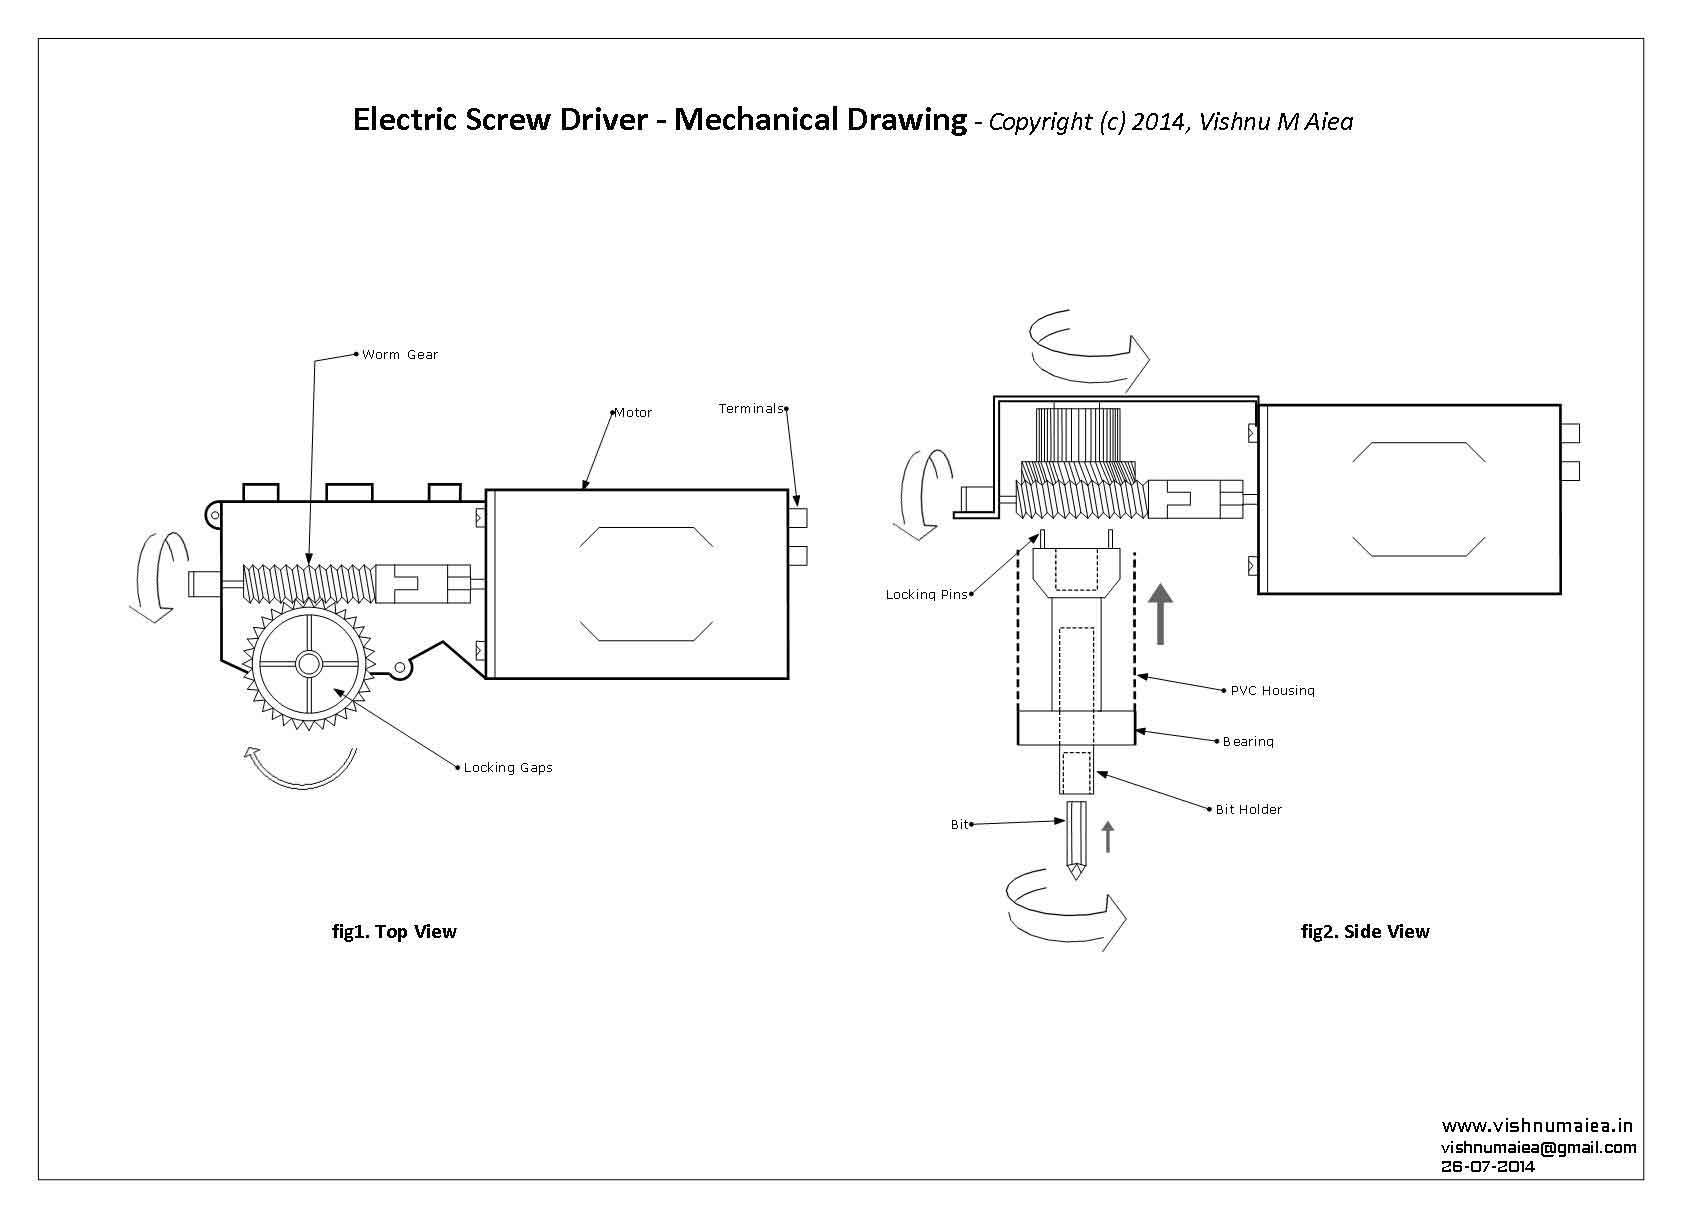 integrating screw driver with motor